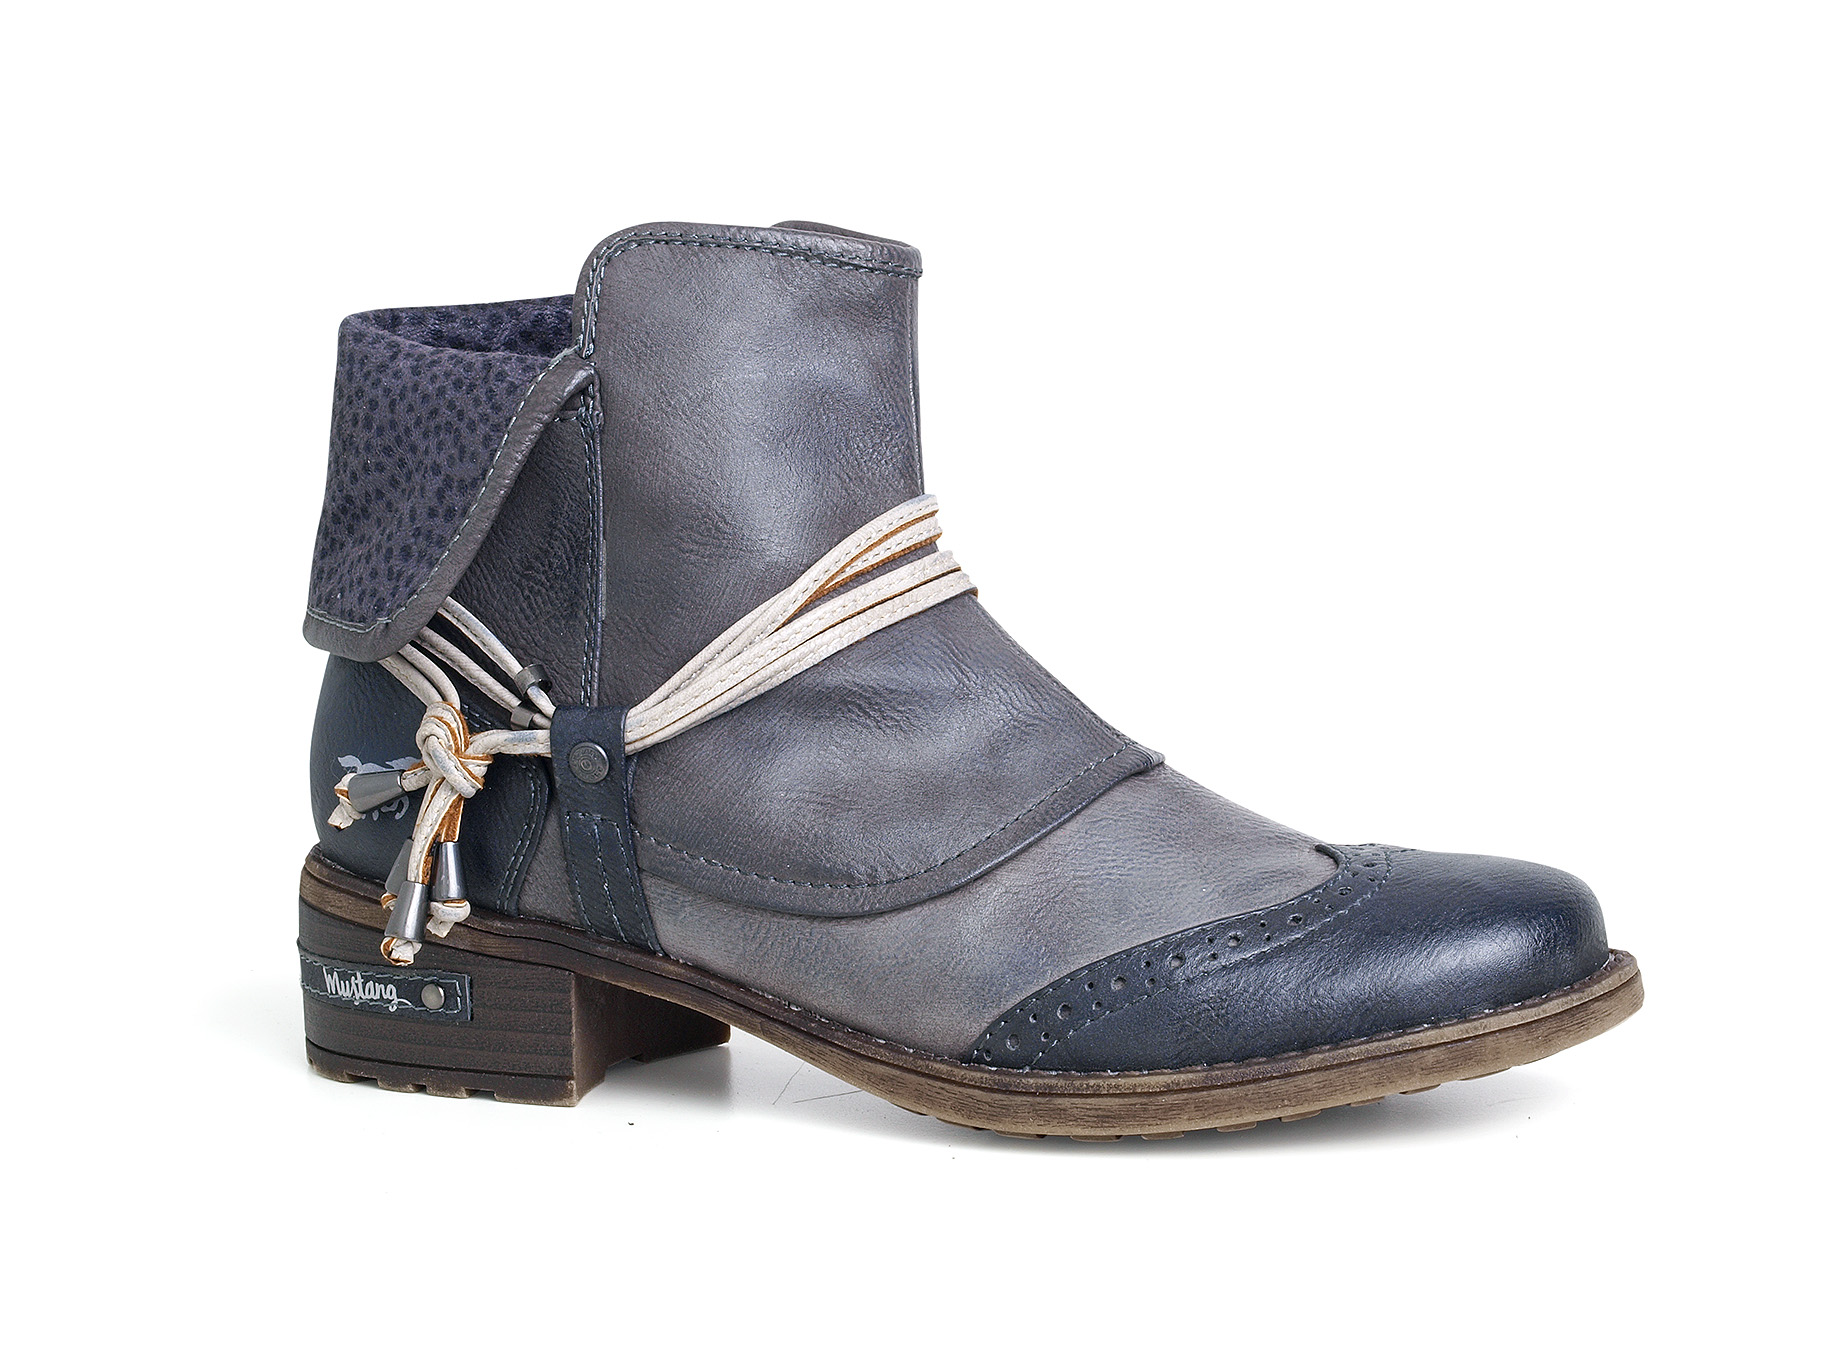 bd65190be8825 Buty damskie Mustang 39C-019 (1229-501-922) mustang shoes